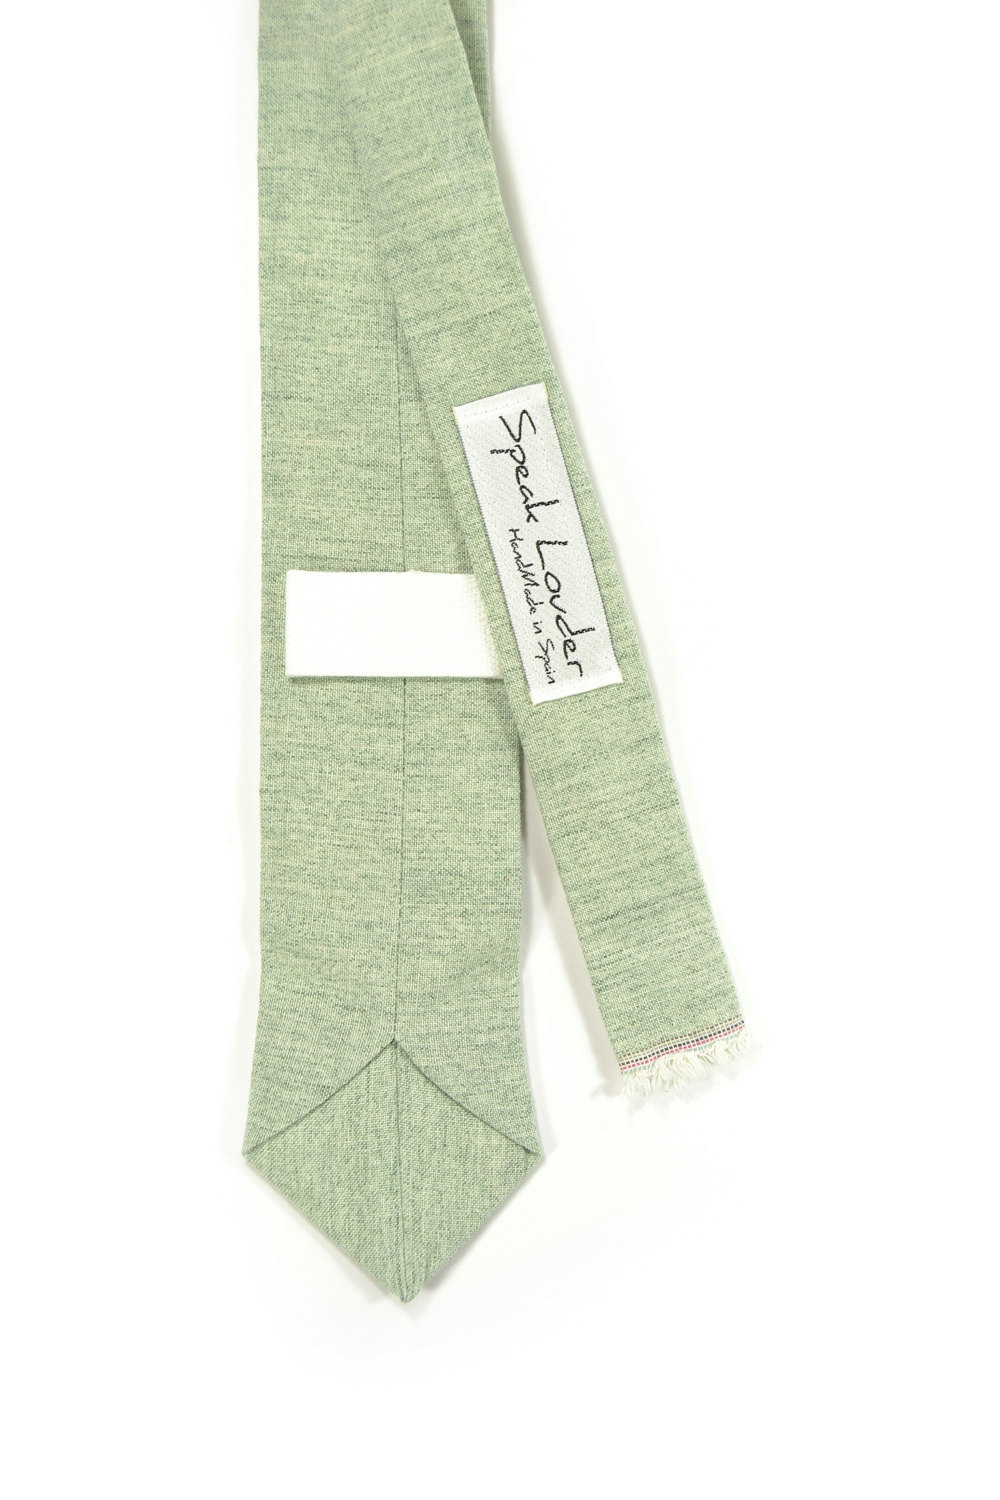 Green Wedding Mens Tie Skinny Necktie  green Japanese fabric image 3